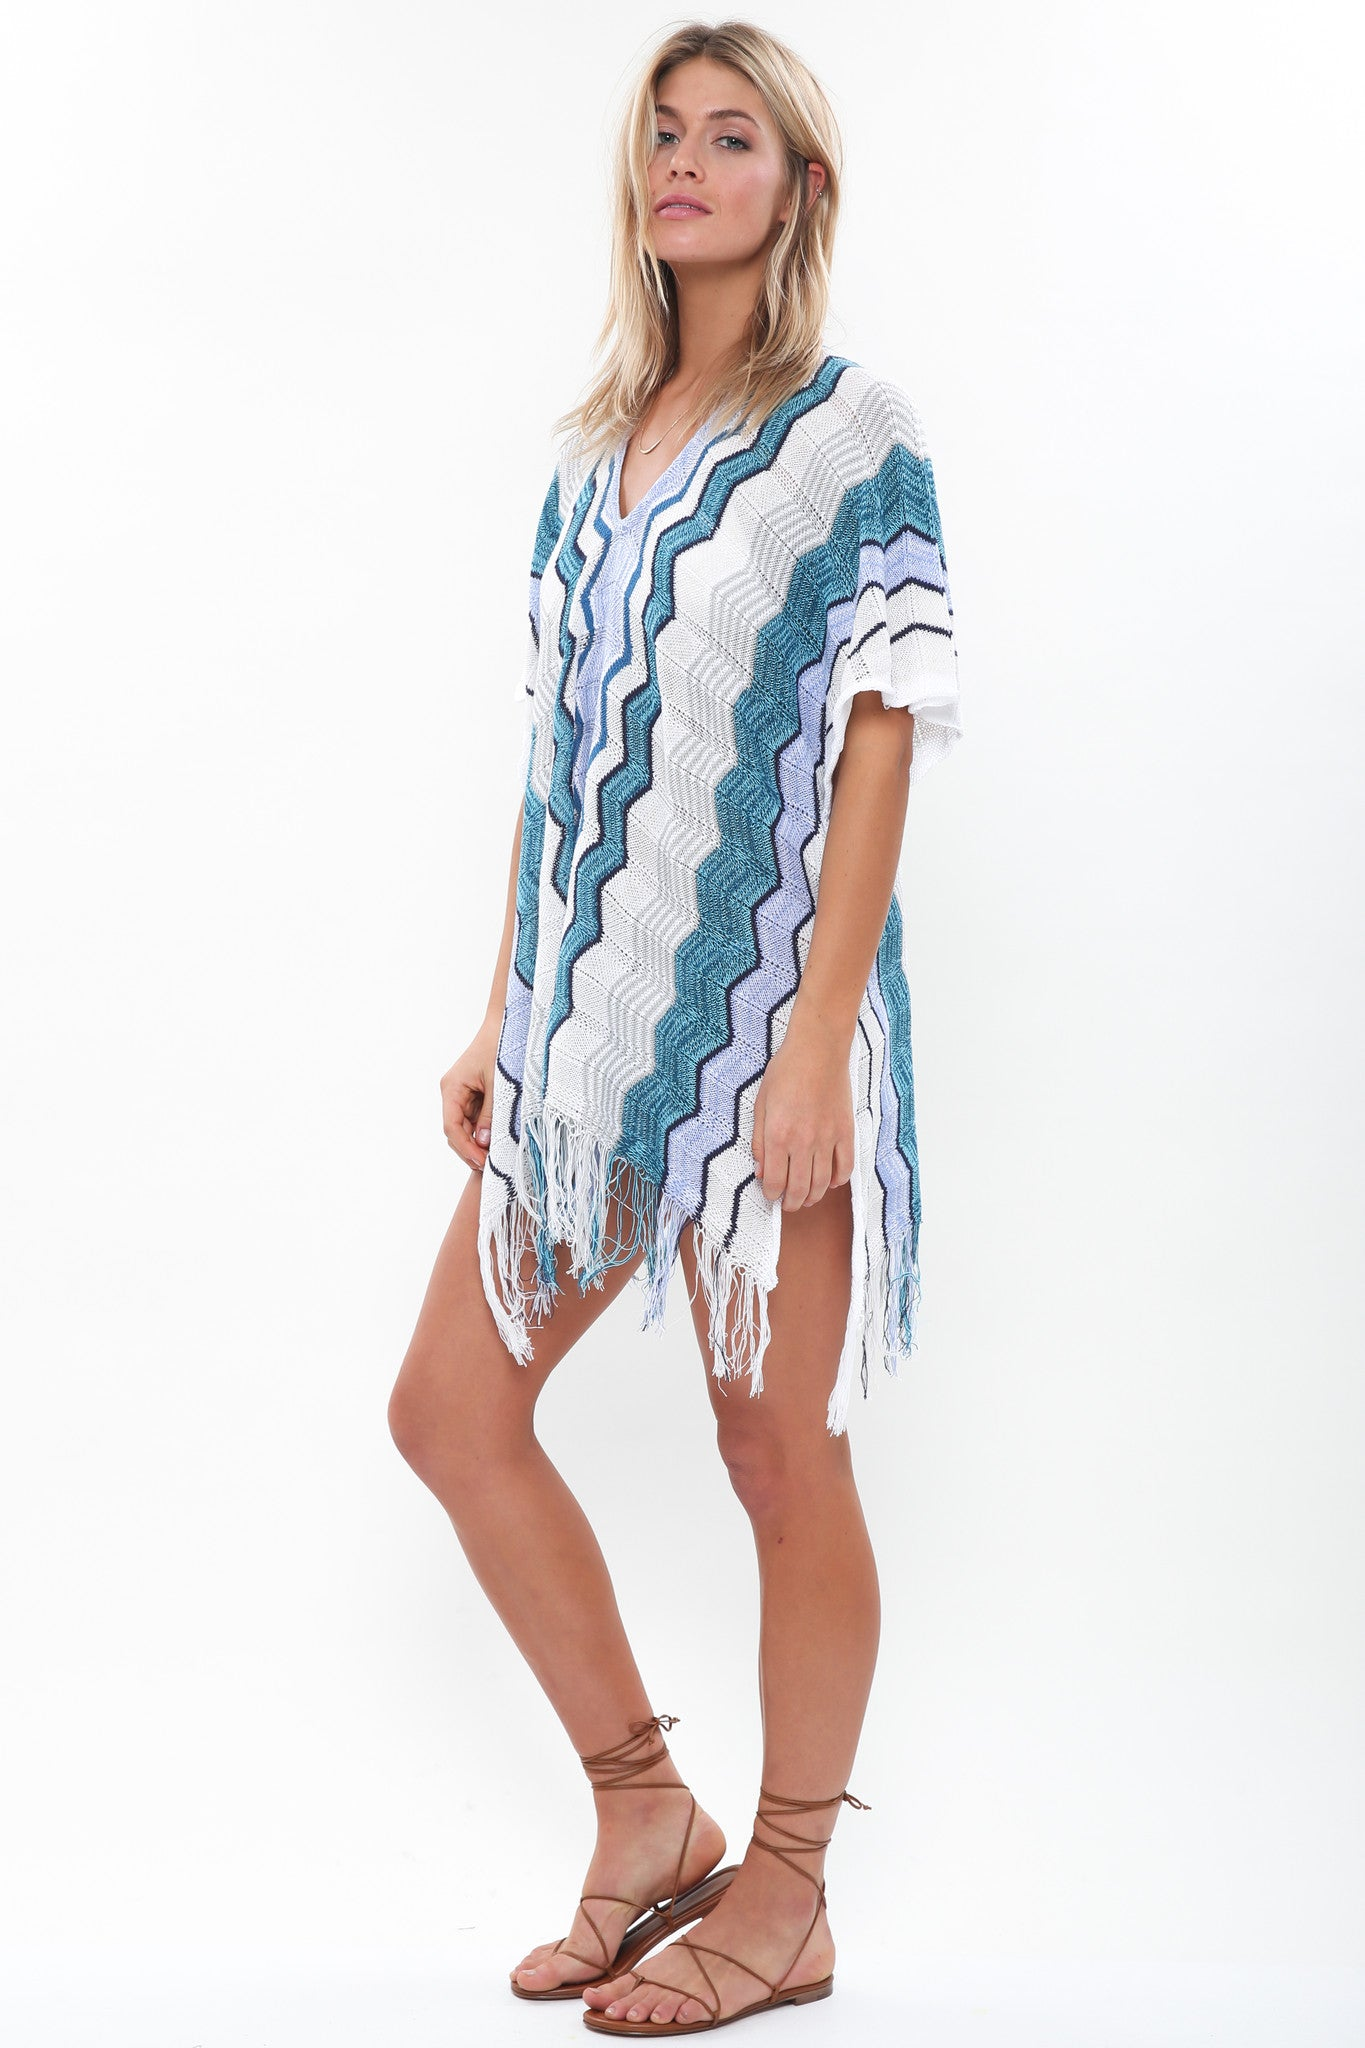 Voyager Sheer Knit Poncho in Serene Sea